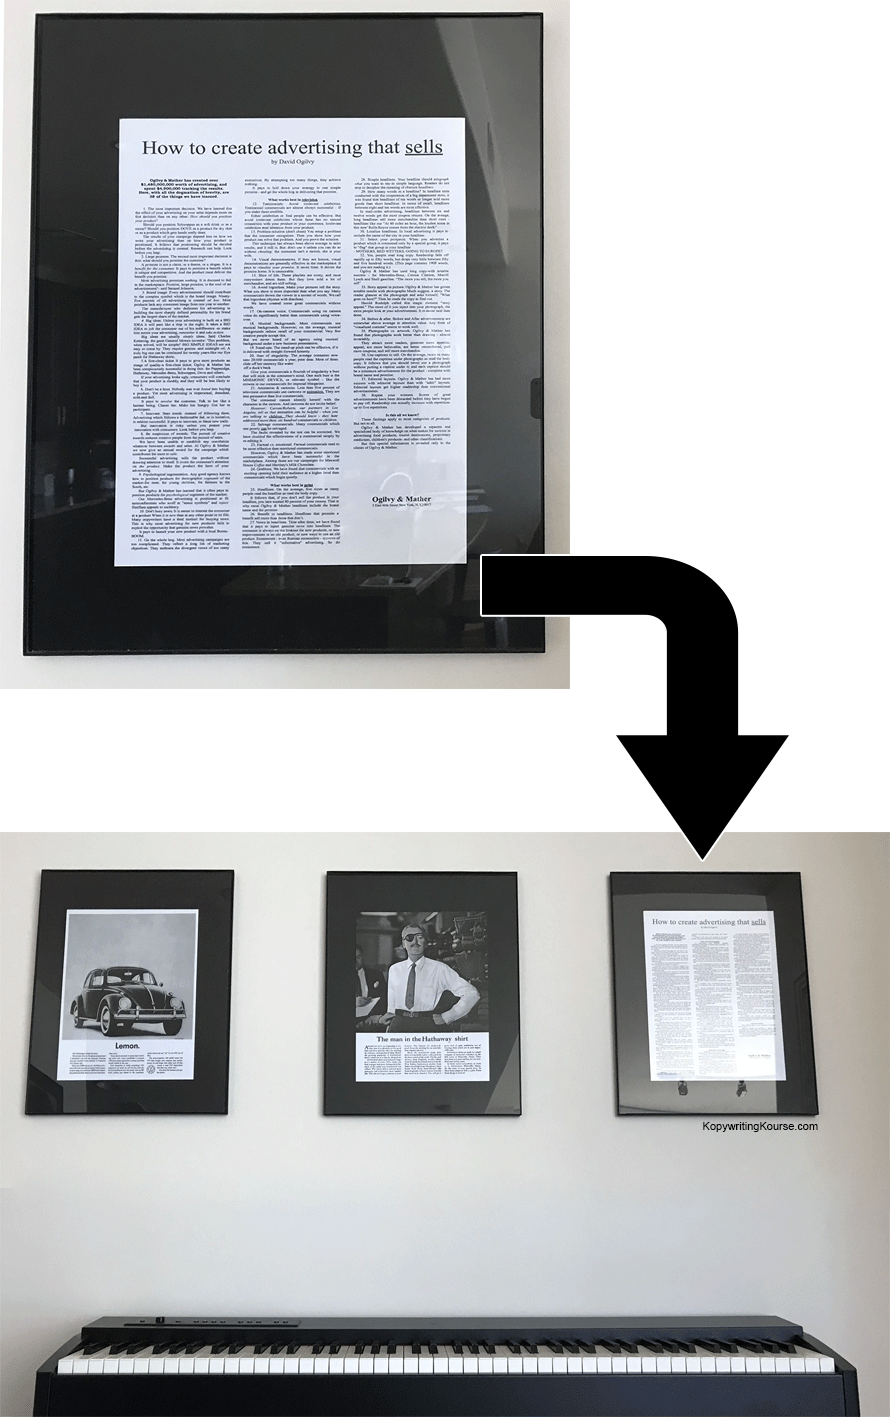 ogilvy advertising that sells frame picture